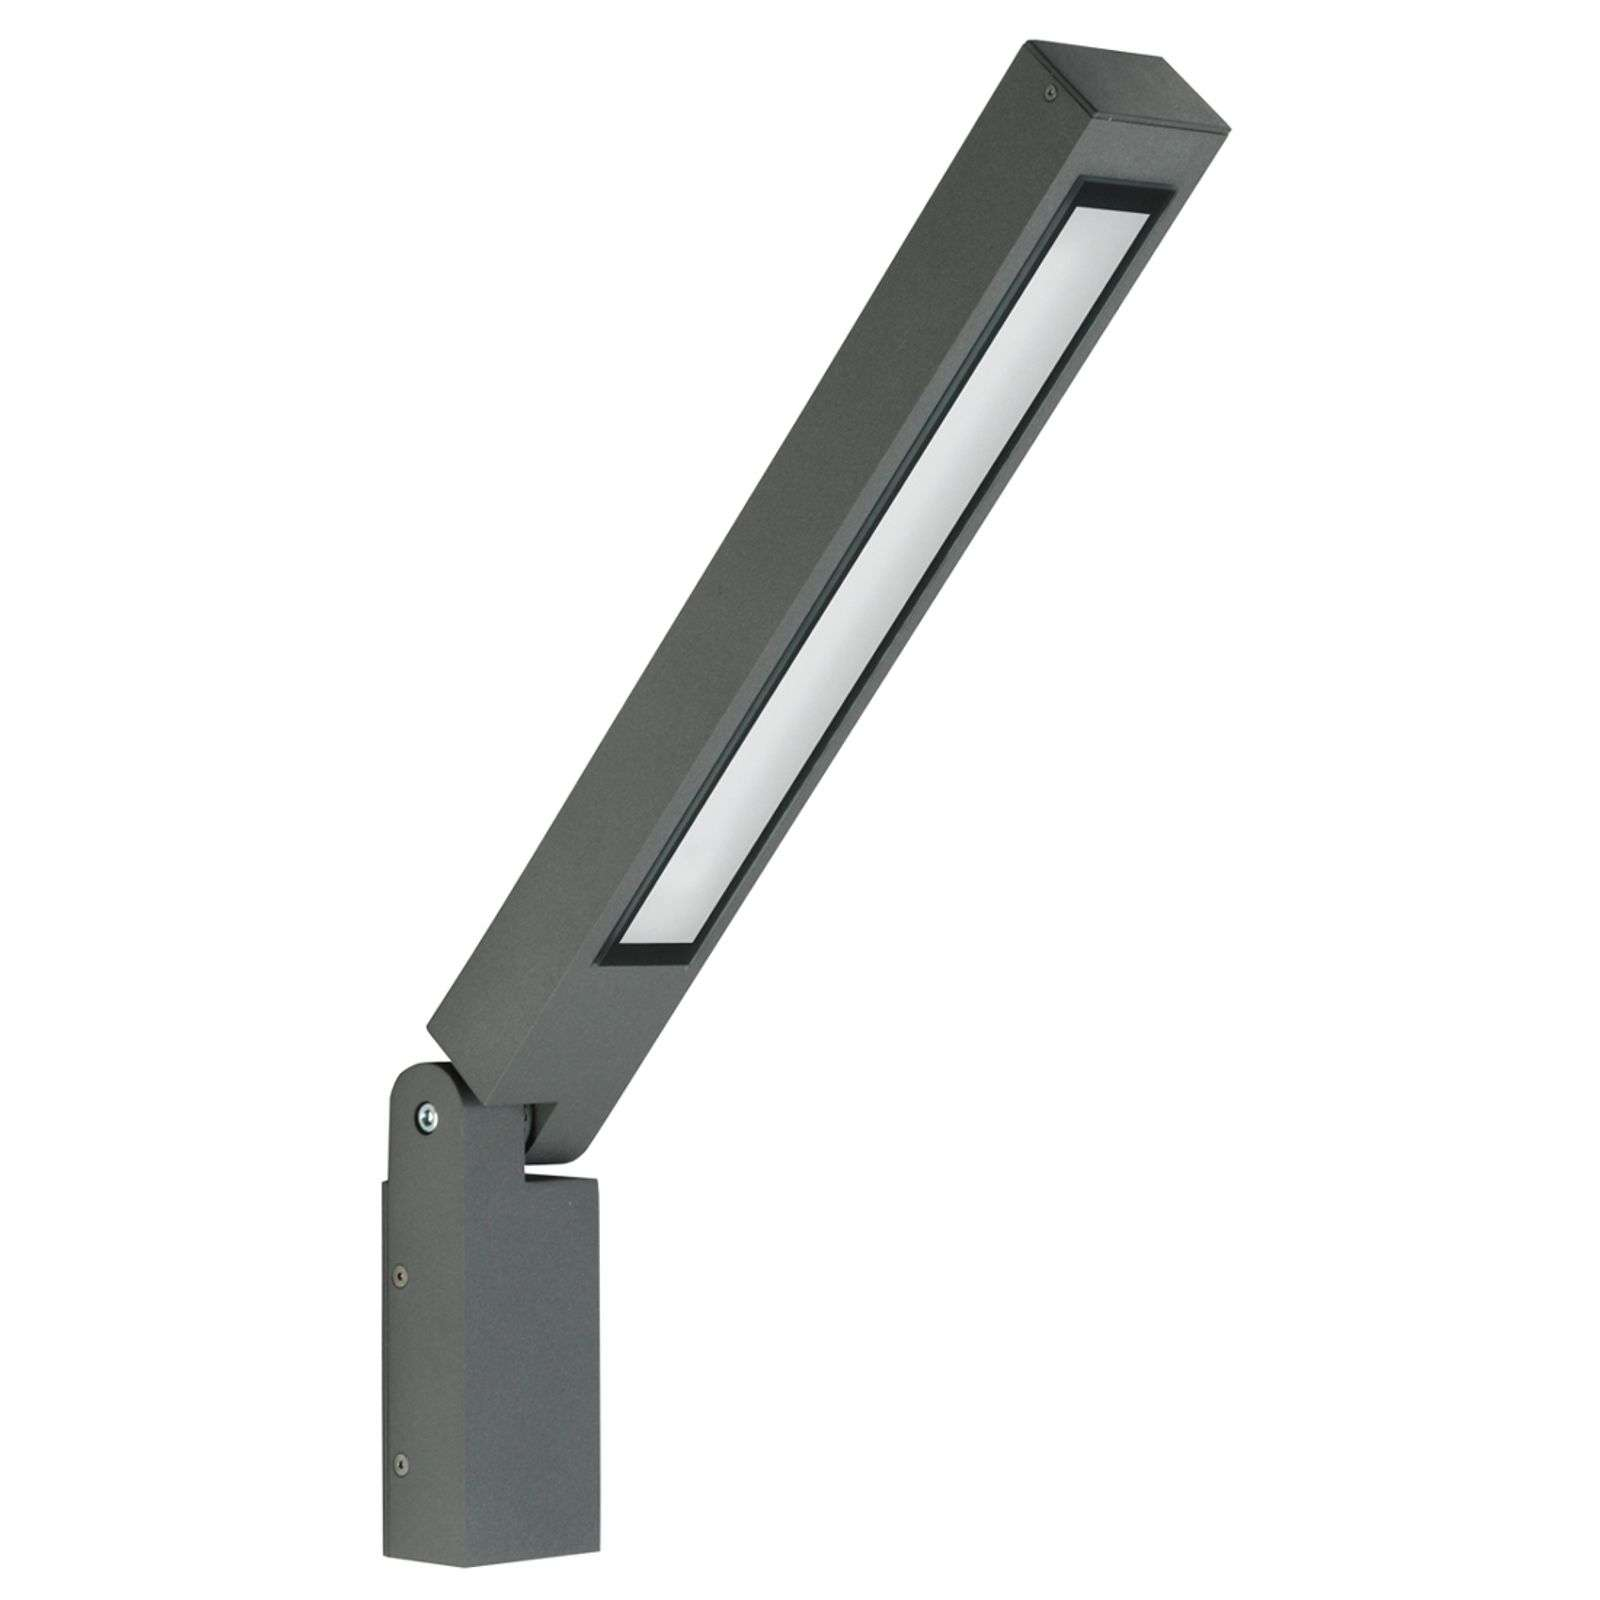 Applique Power-LED Tiogo inclinable, anthracite